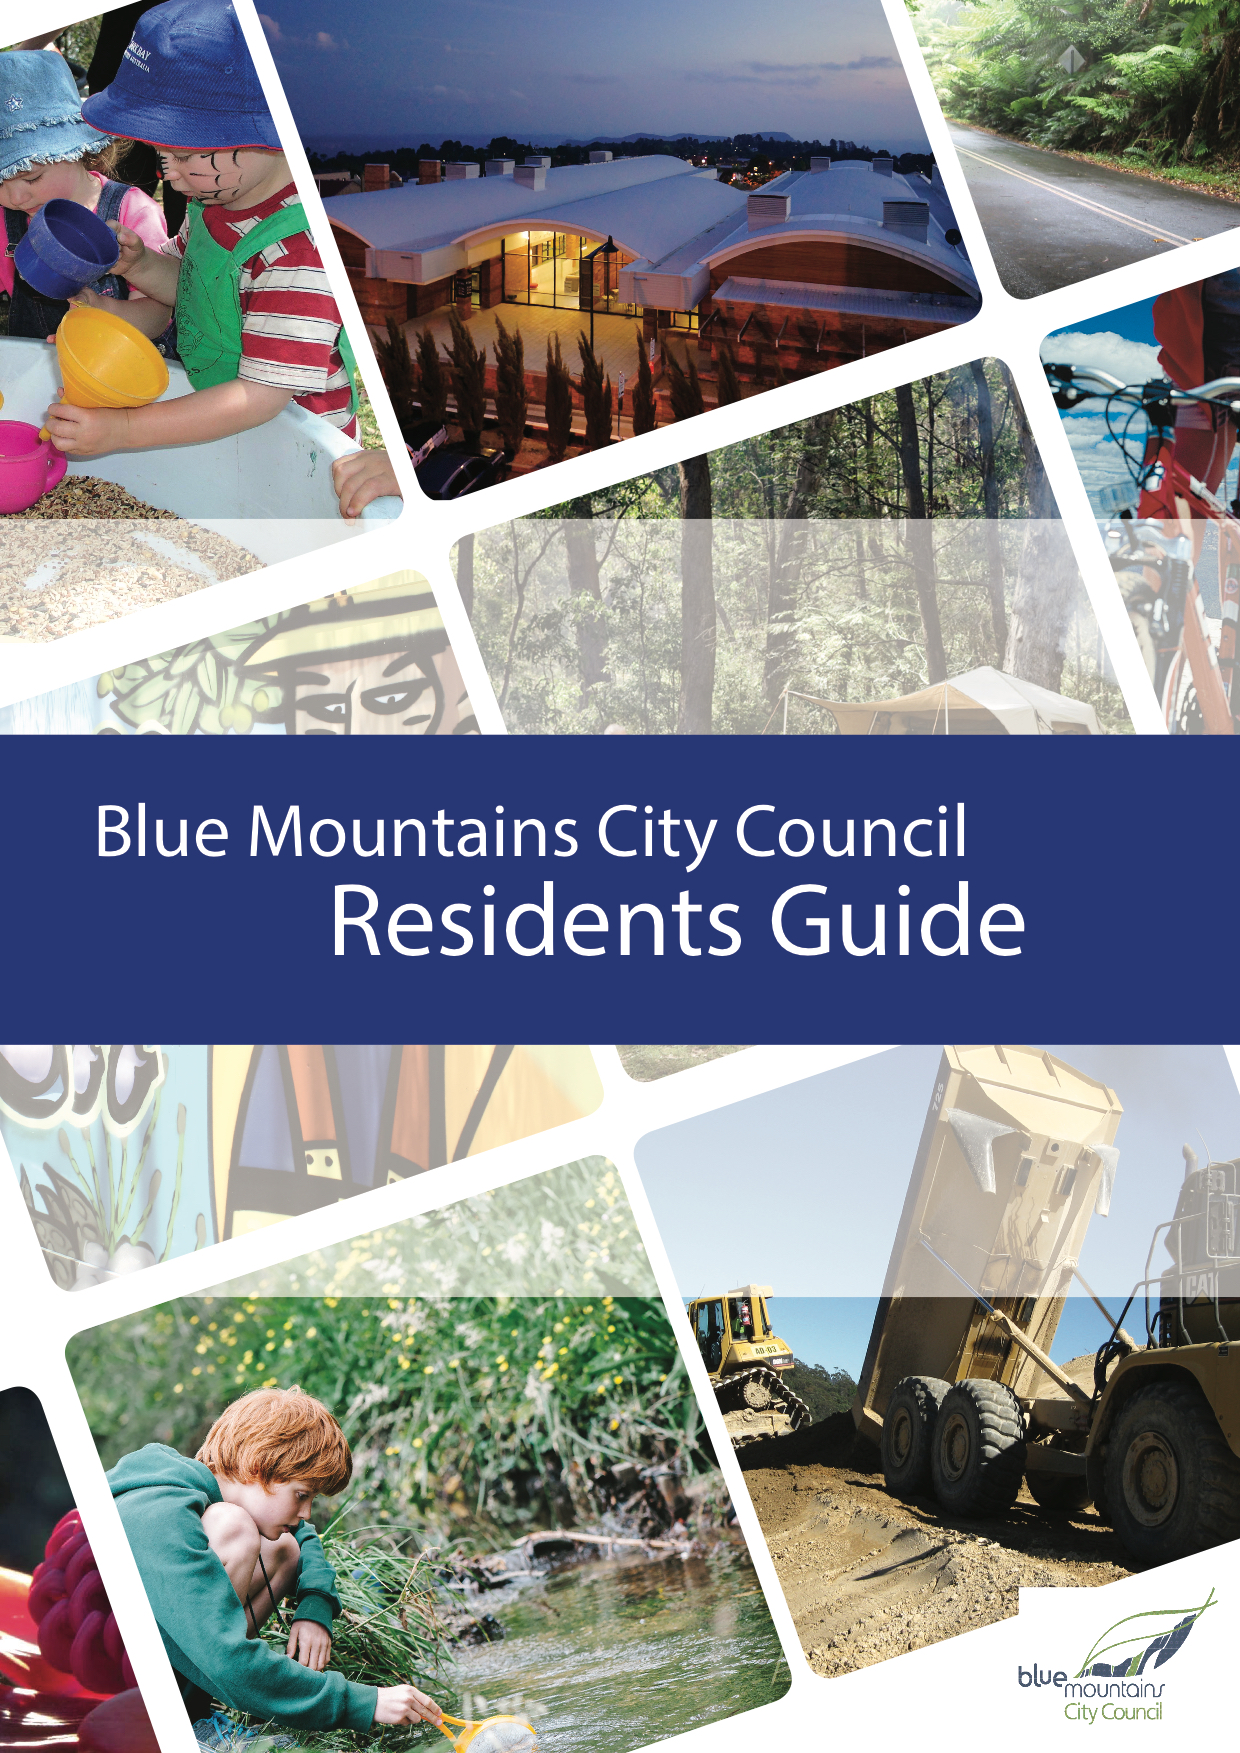 Blue Mountains City Council Residents Guide